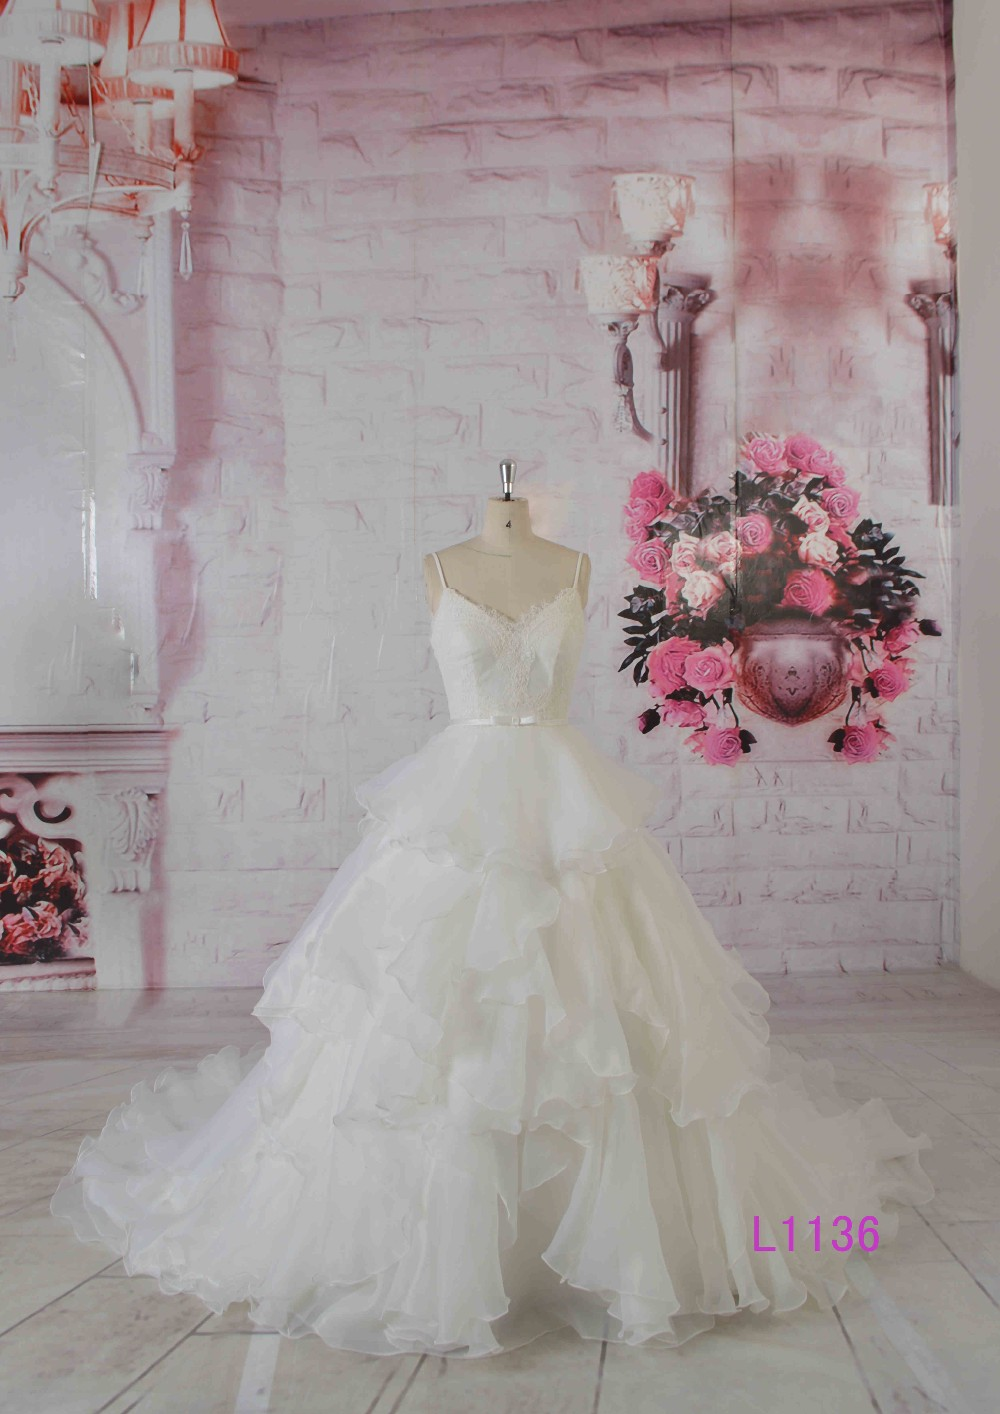 latest pictures bridal gown bandage wedding dress dresses 2016